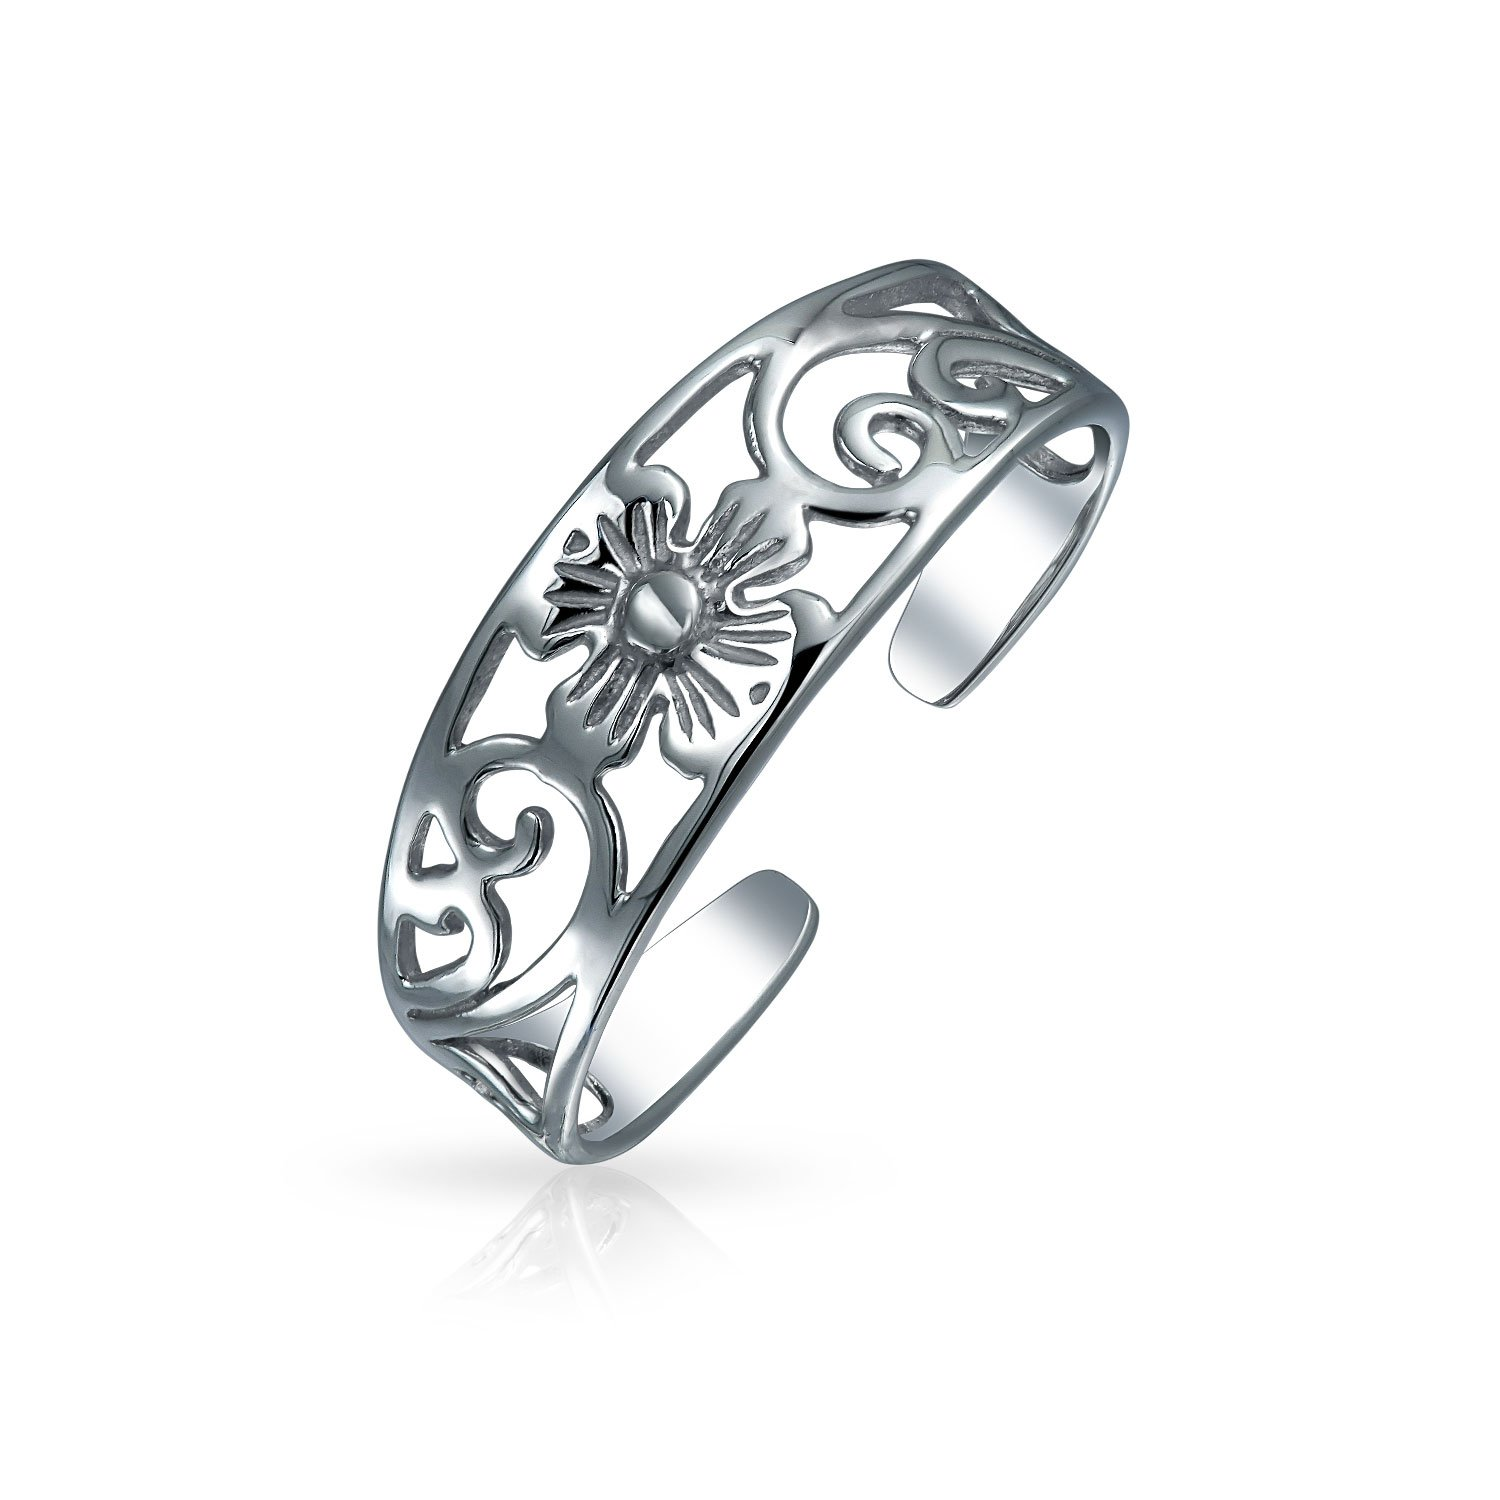 Bling Jewelry Adjustable Filigree Flower Toe Ring 925 Silver Midi Rings PMR-R11097